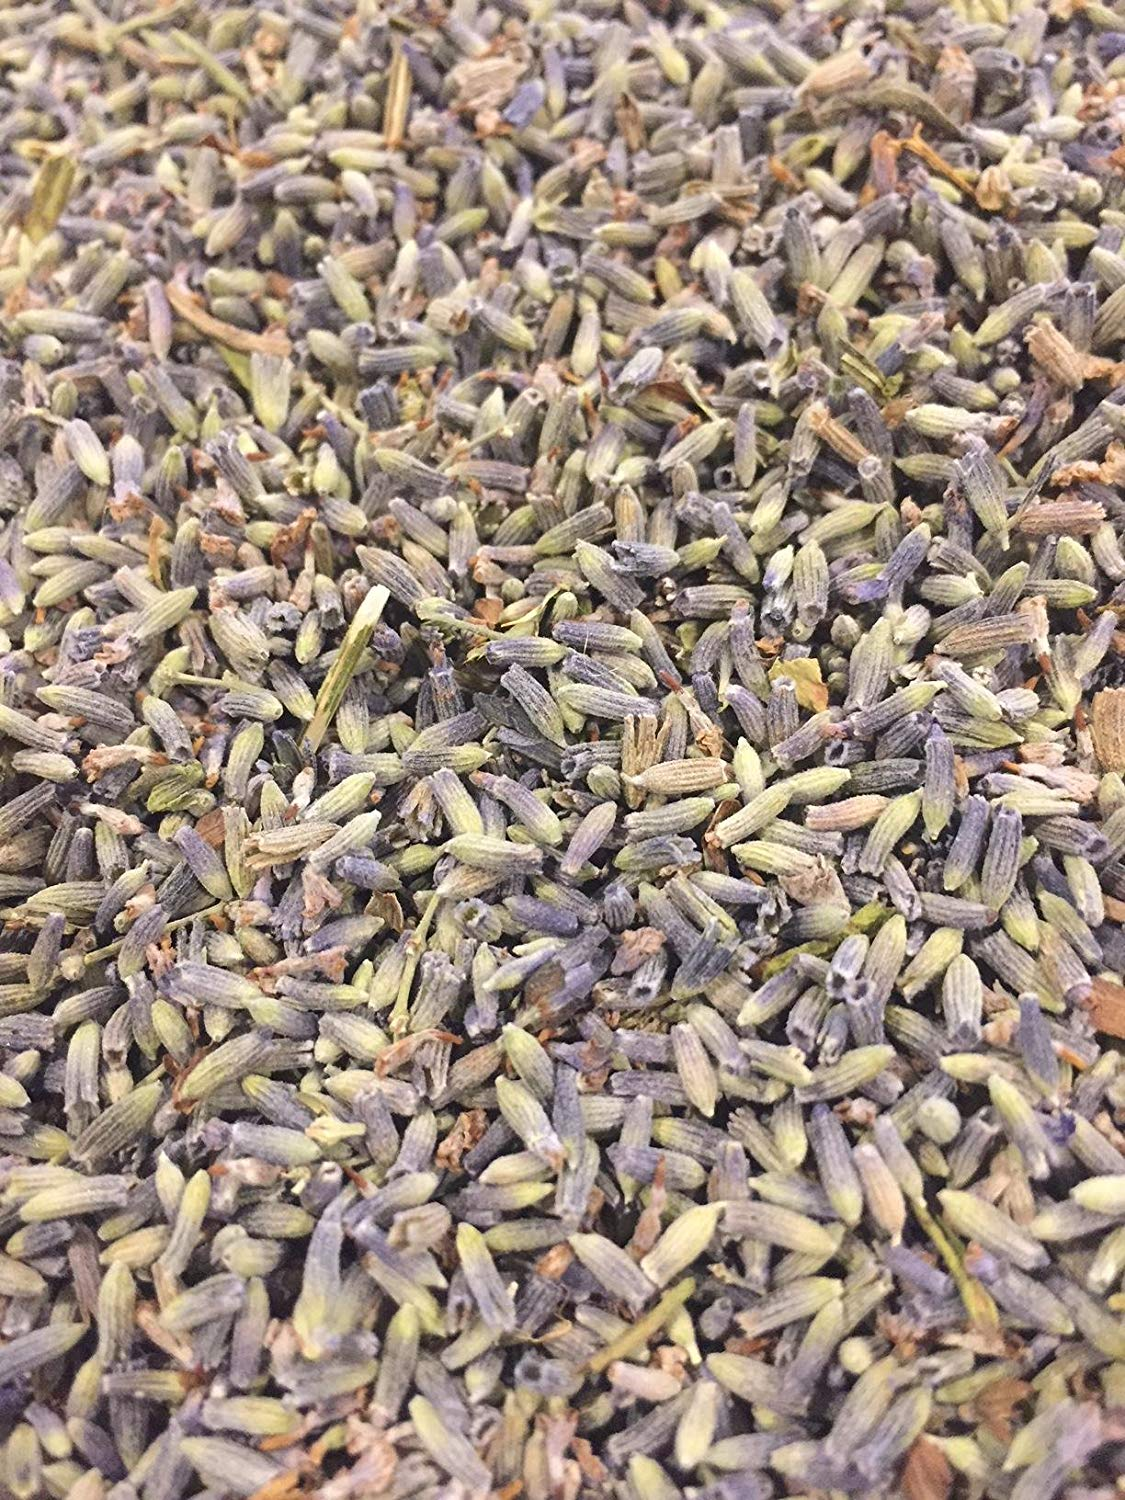 Wreaths For Door Dried French Lavender Buds By The Pound 16 Ounces Use For Sachets Wedding Toss Soap Bath Bombs Wedding Favors Party Favors Perfect For DIY Crafts